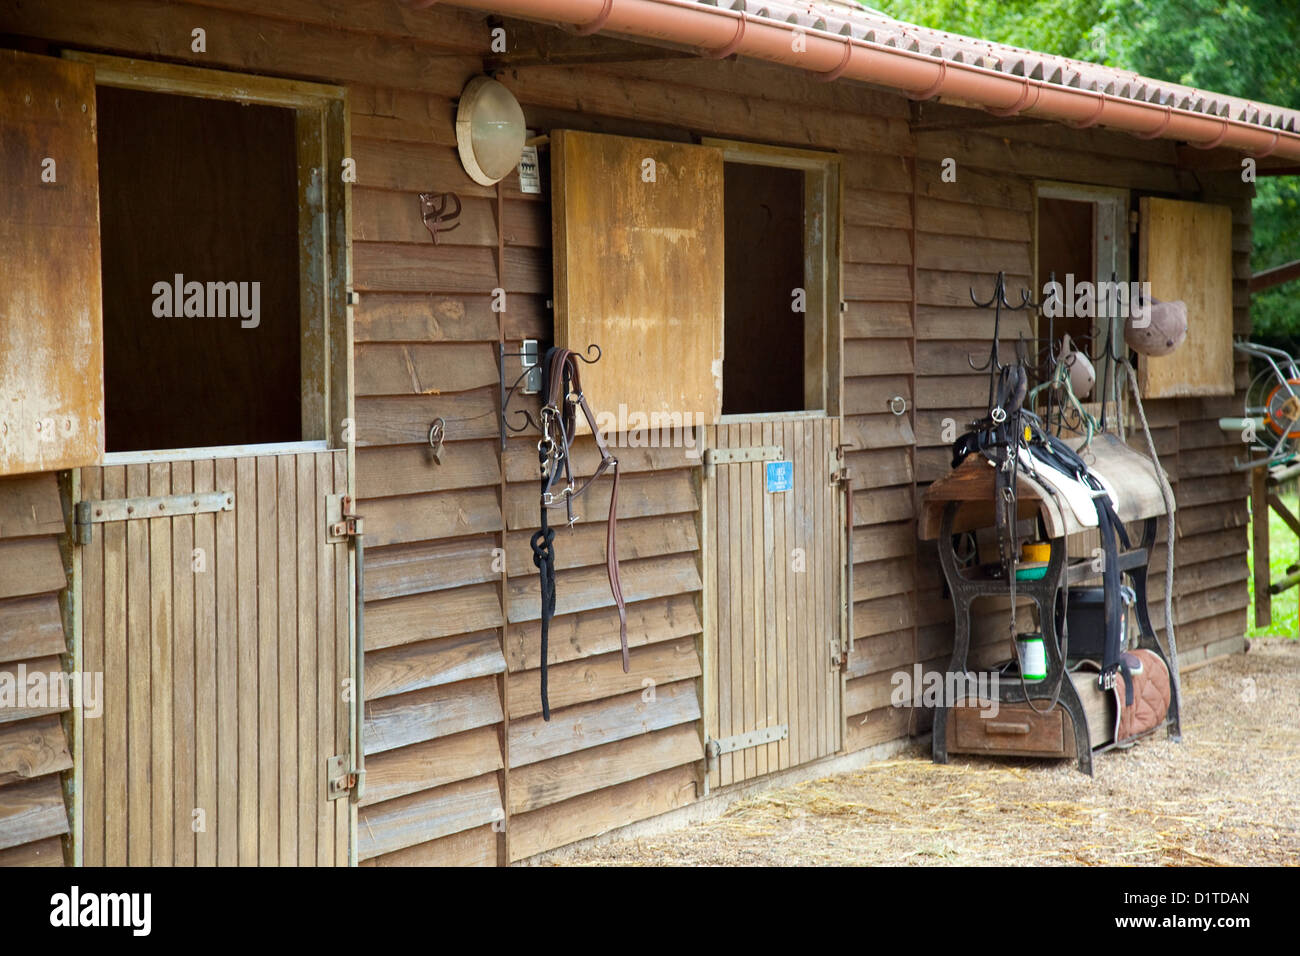 An outdoor view of a wooden horse stable with 3 doors in Chamont France. & Horse Stable Doors Stock Photos \u0026 Horse Stable Doors Stock Images ...